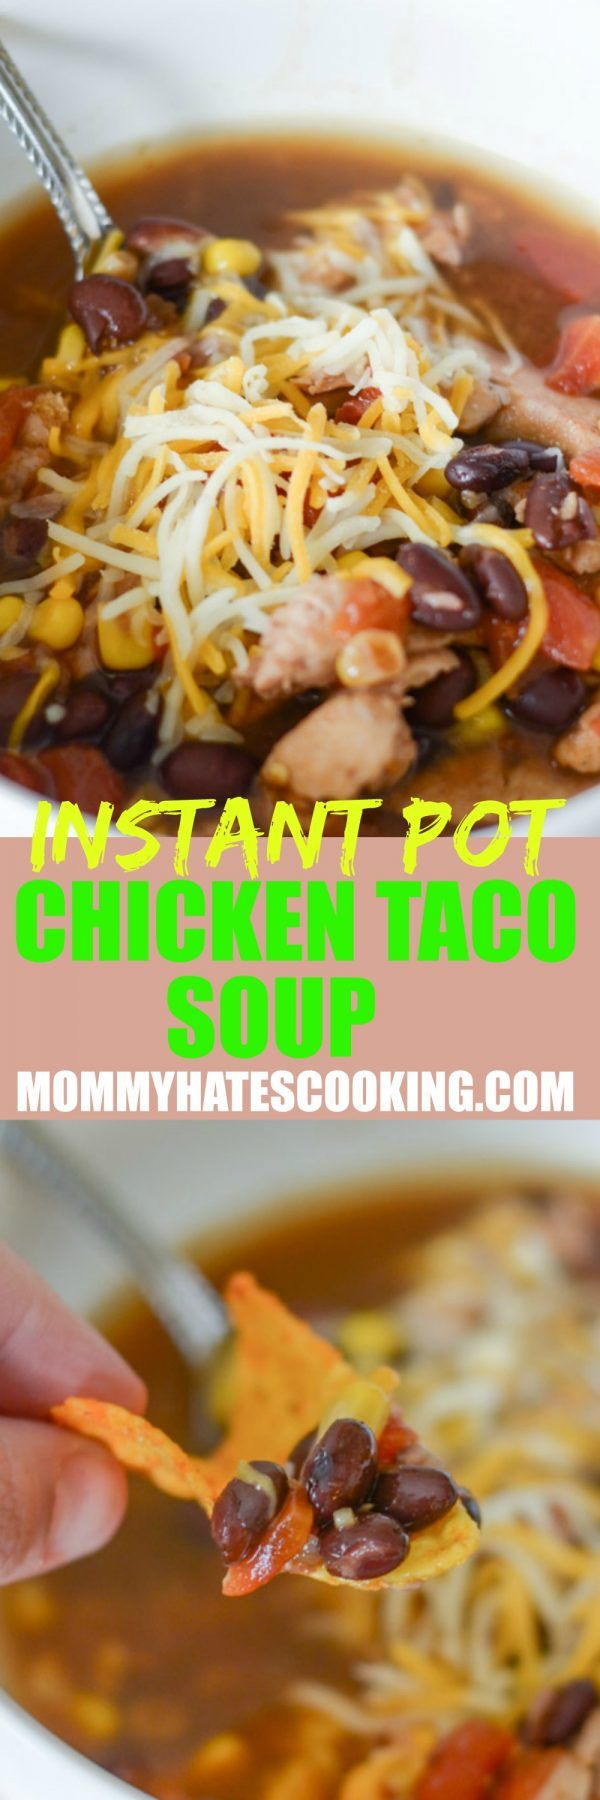 Instant Pot Chicken Taco Soup #tacosoup